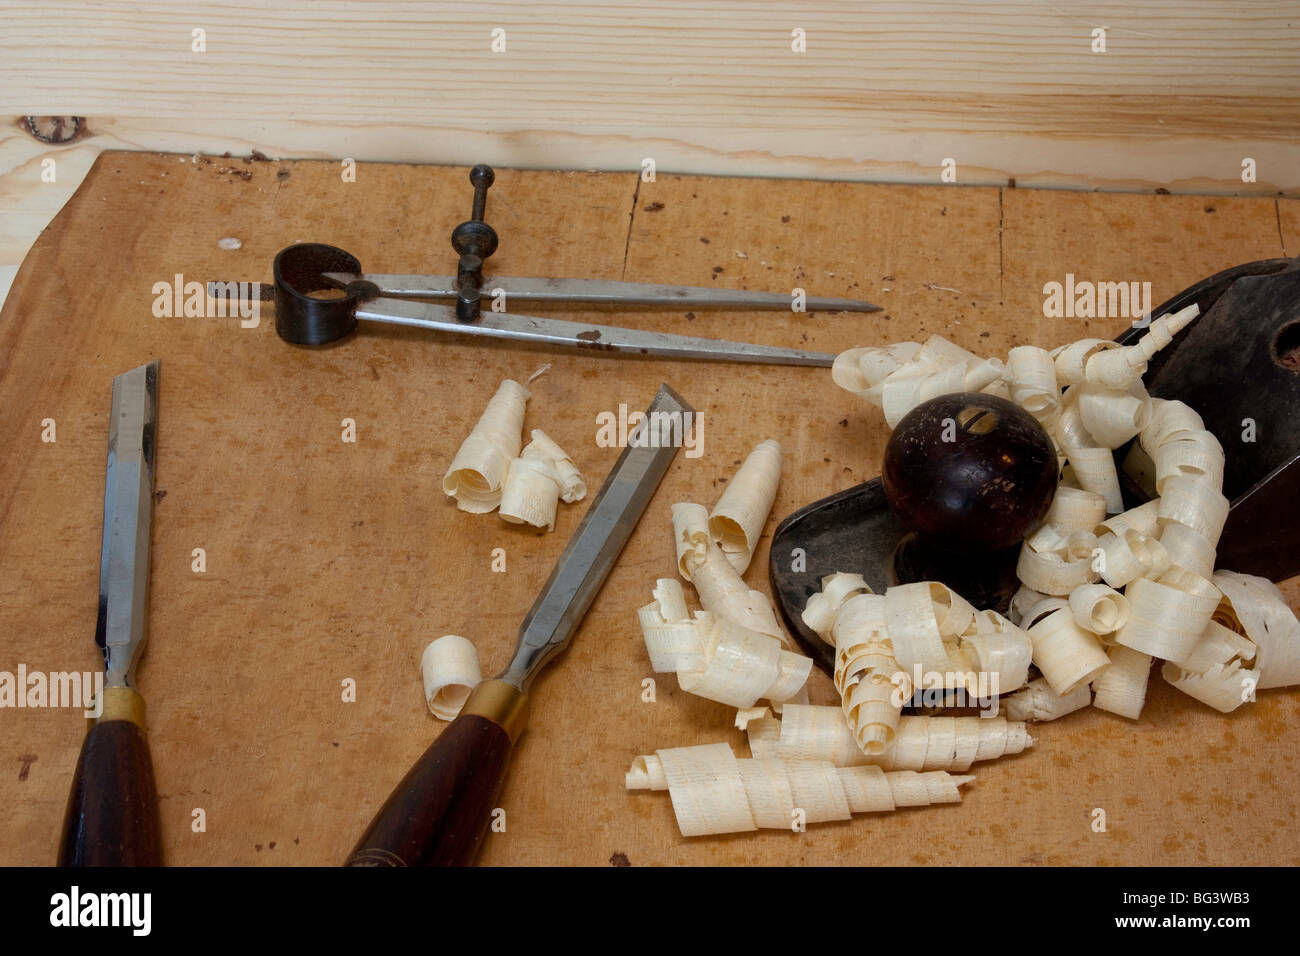 Dividers Skew chisels and a plane with pine shavings - Stock Image